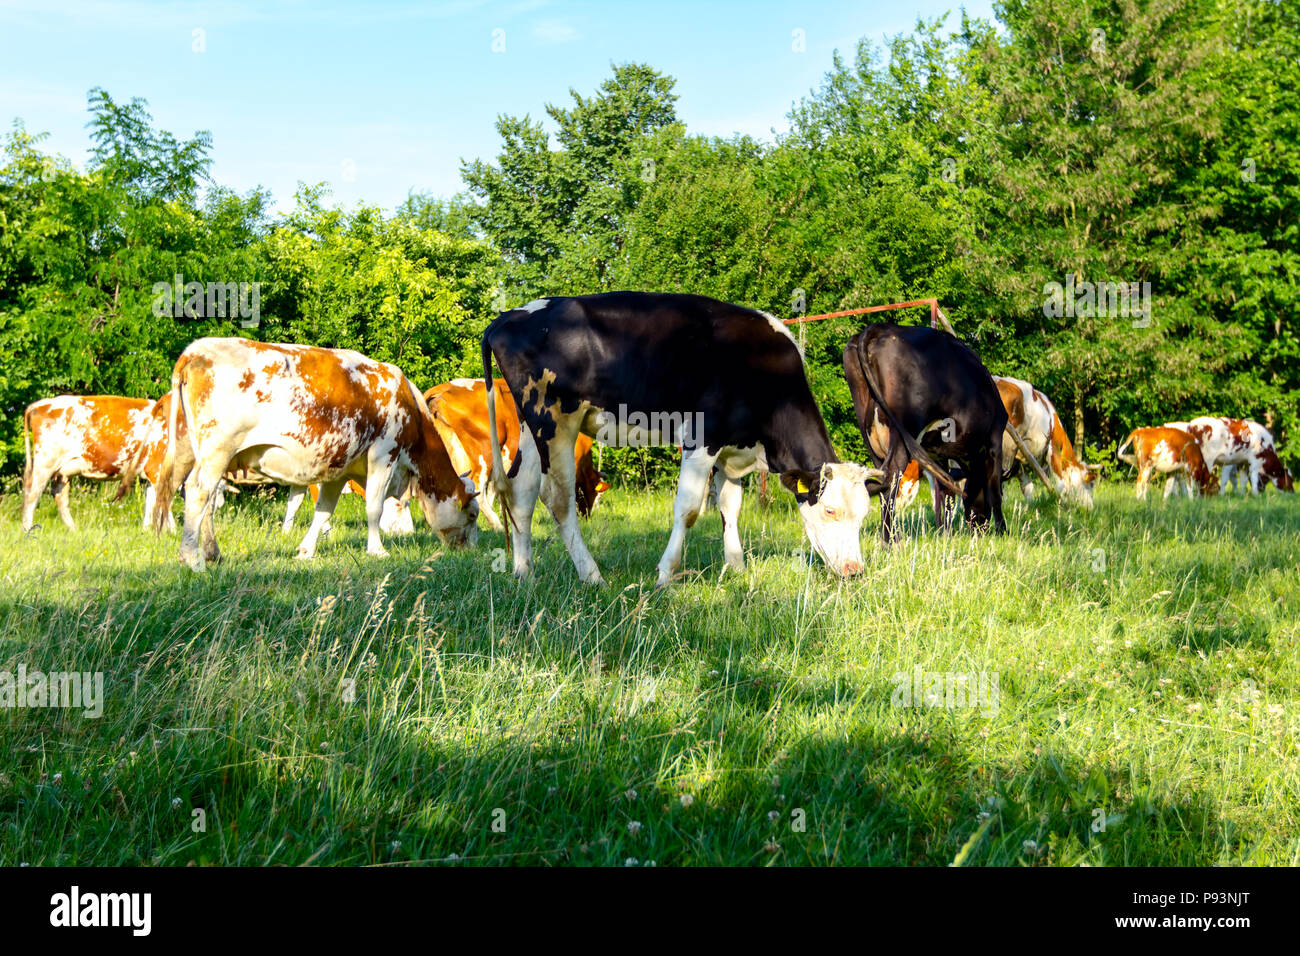 Herd of domestic bloodstock cows are grazing grass in rural village. Stock Photo